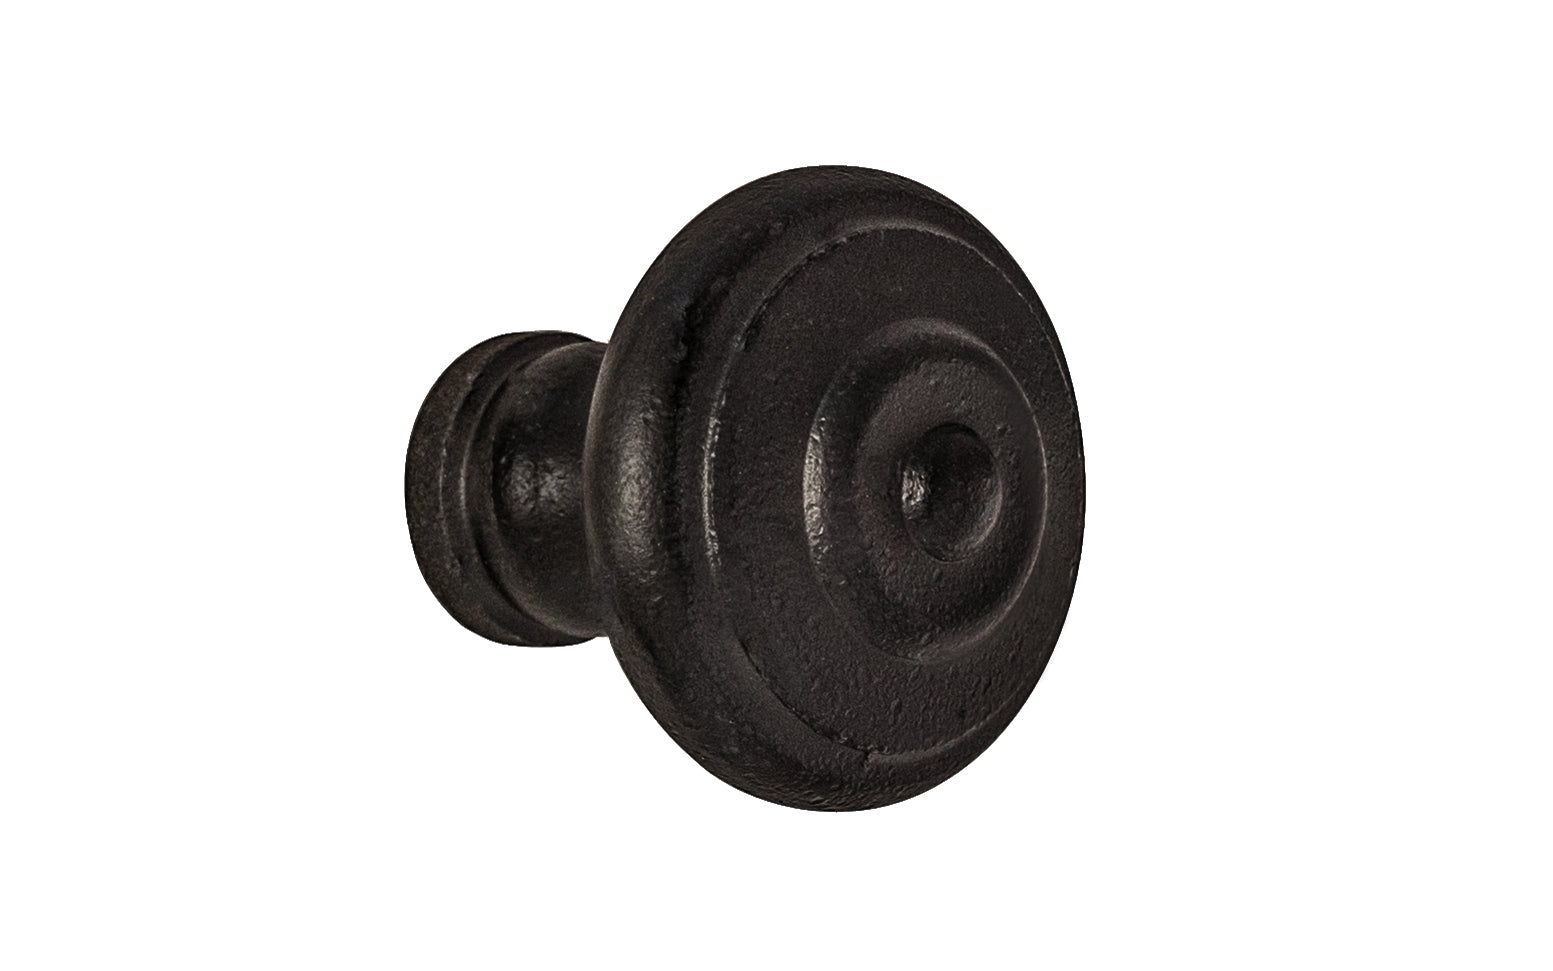 Satin Black Cast Iron Knob